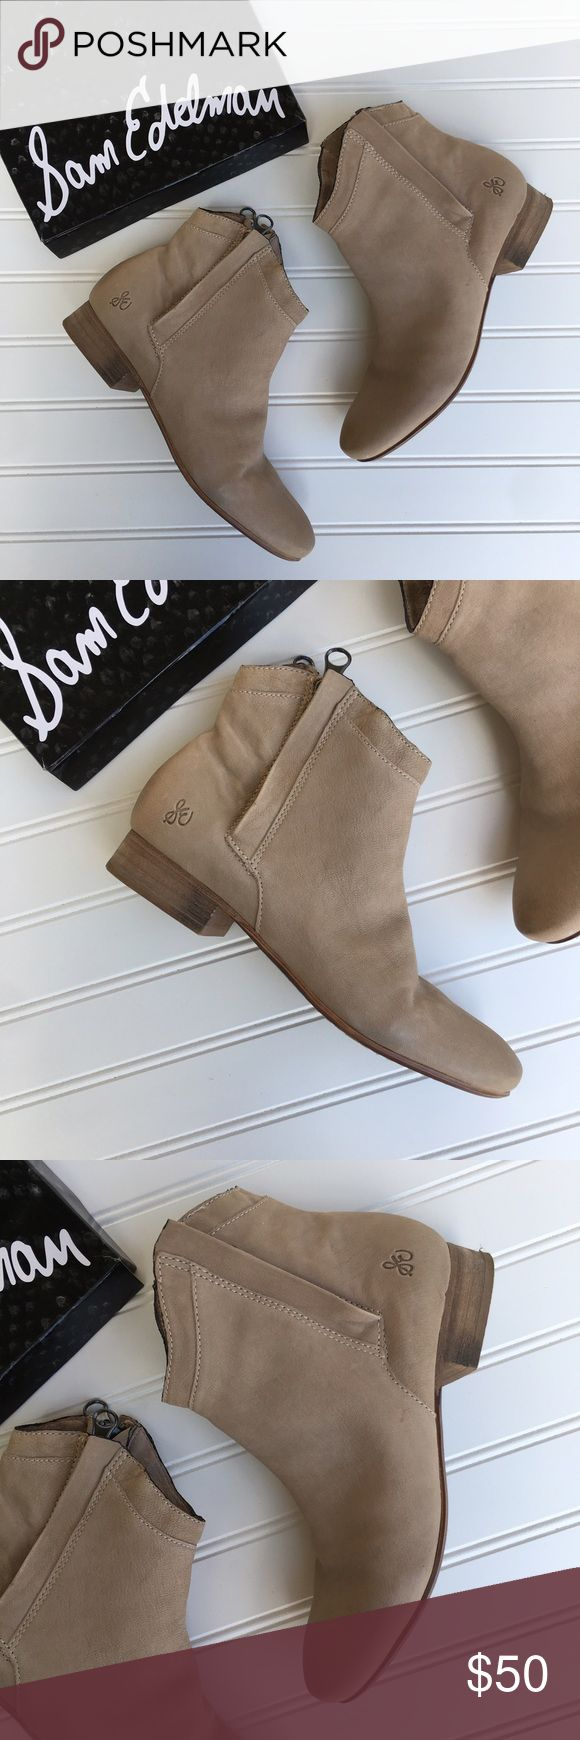 Sam Edelman Taupe Cody Ankle Booties Excellent pre-owned condition lovely Cody dual zip leather taupe ankle booties. Some minor scuffs to the back of the booties and bottoms. Despite that in excellent condition will come in original box. Absolutely beautiful comfortable pair of Booties! Size 7 M             ⚠️ NO LOW BALLERS! Sam Edelman Shoes Ankle Boots & Booties